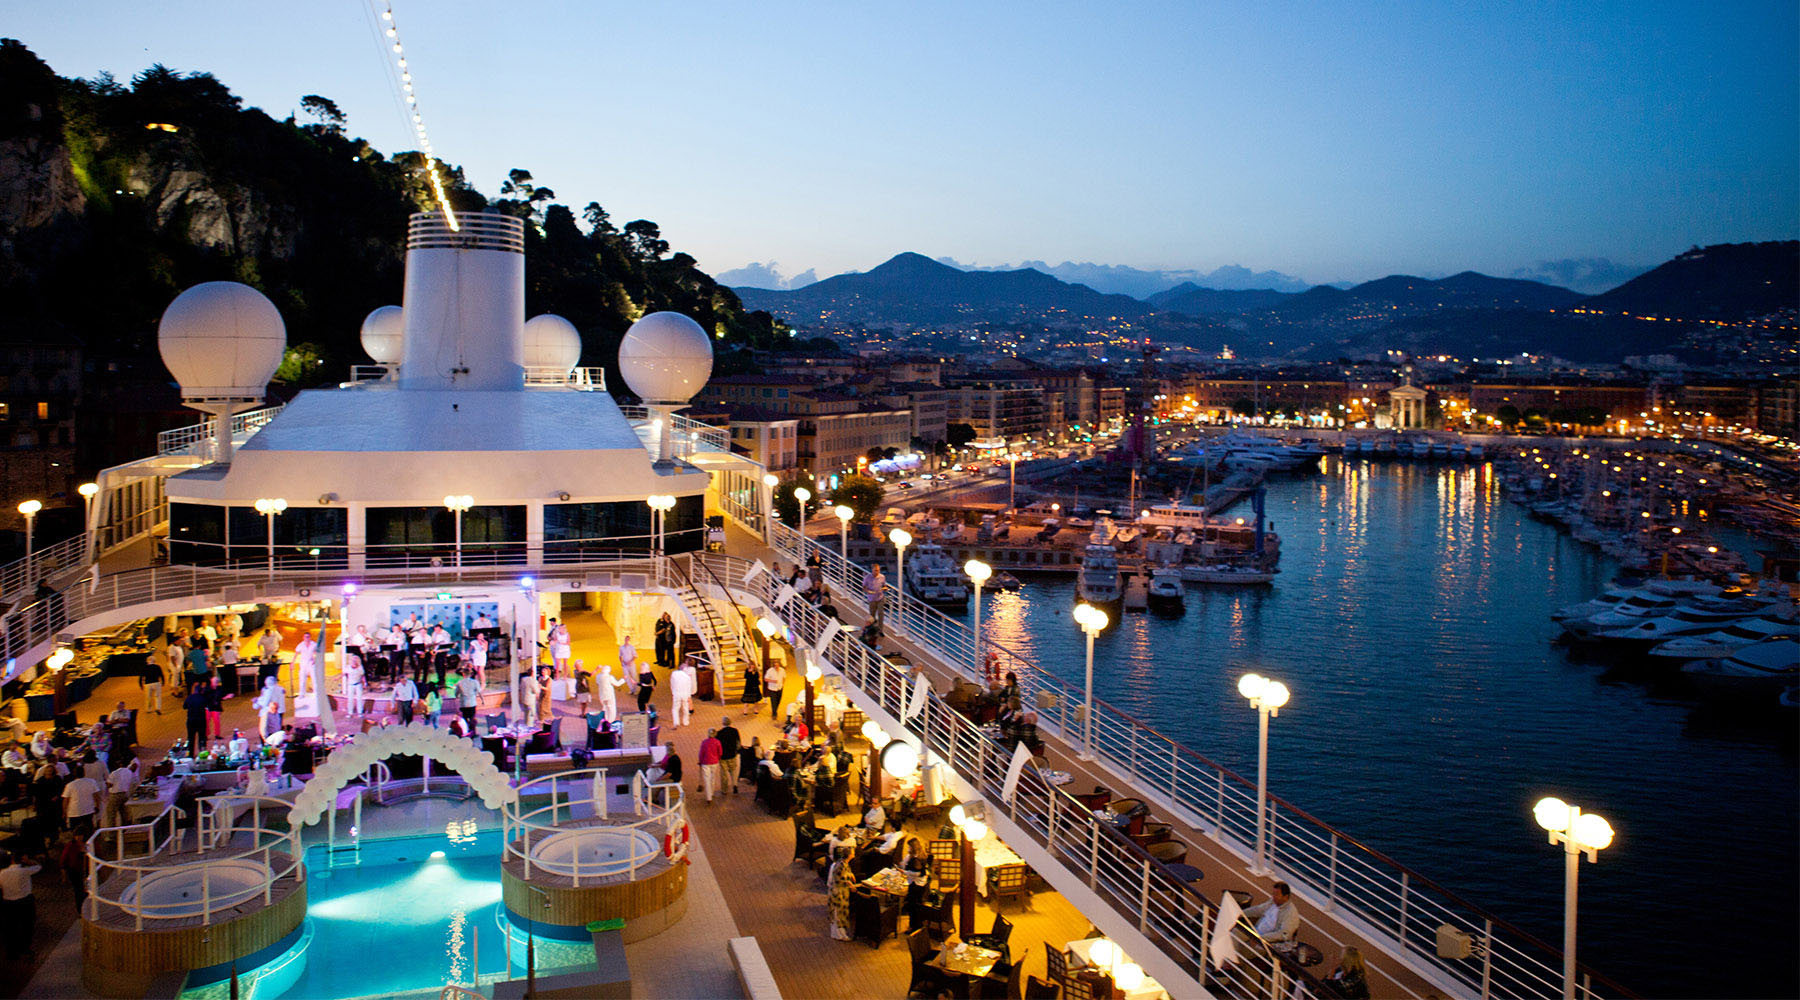 Preferred Partner Pricing